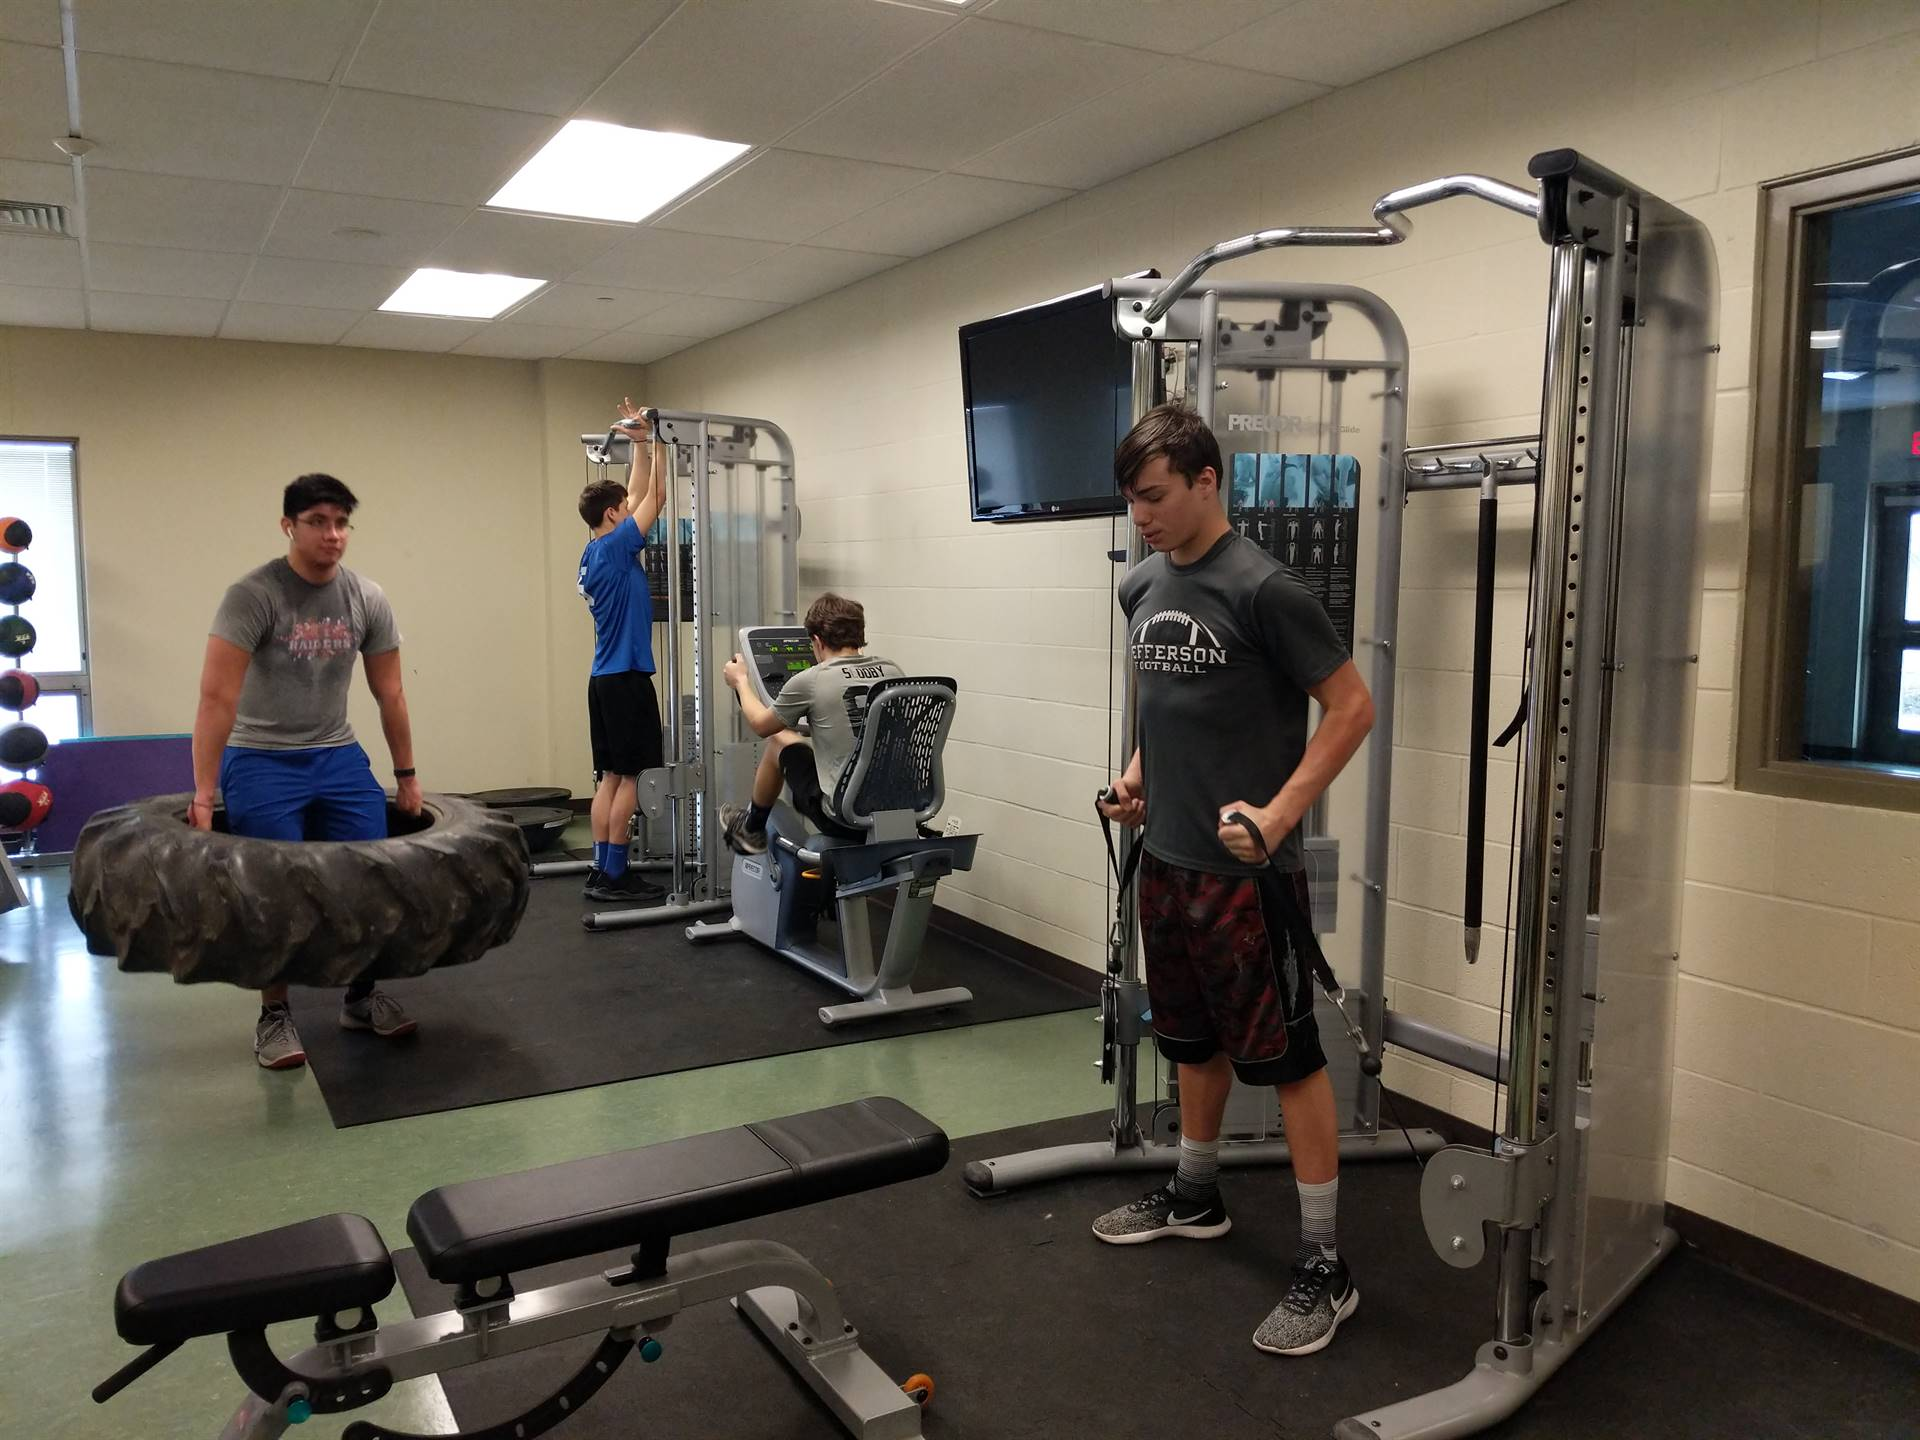 Criminal Justice students use the work our lab as part of their physical fitness.